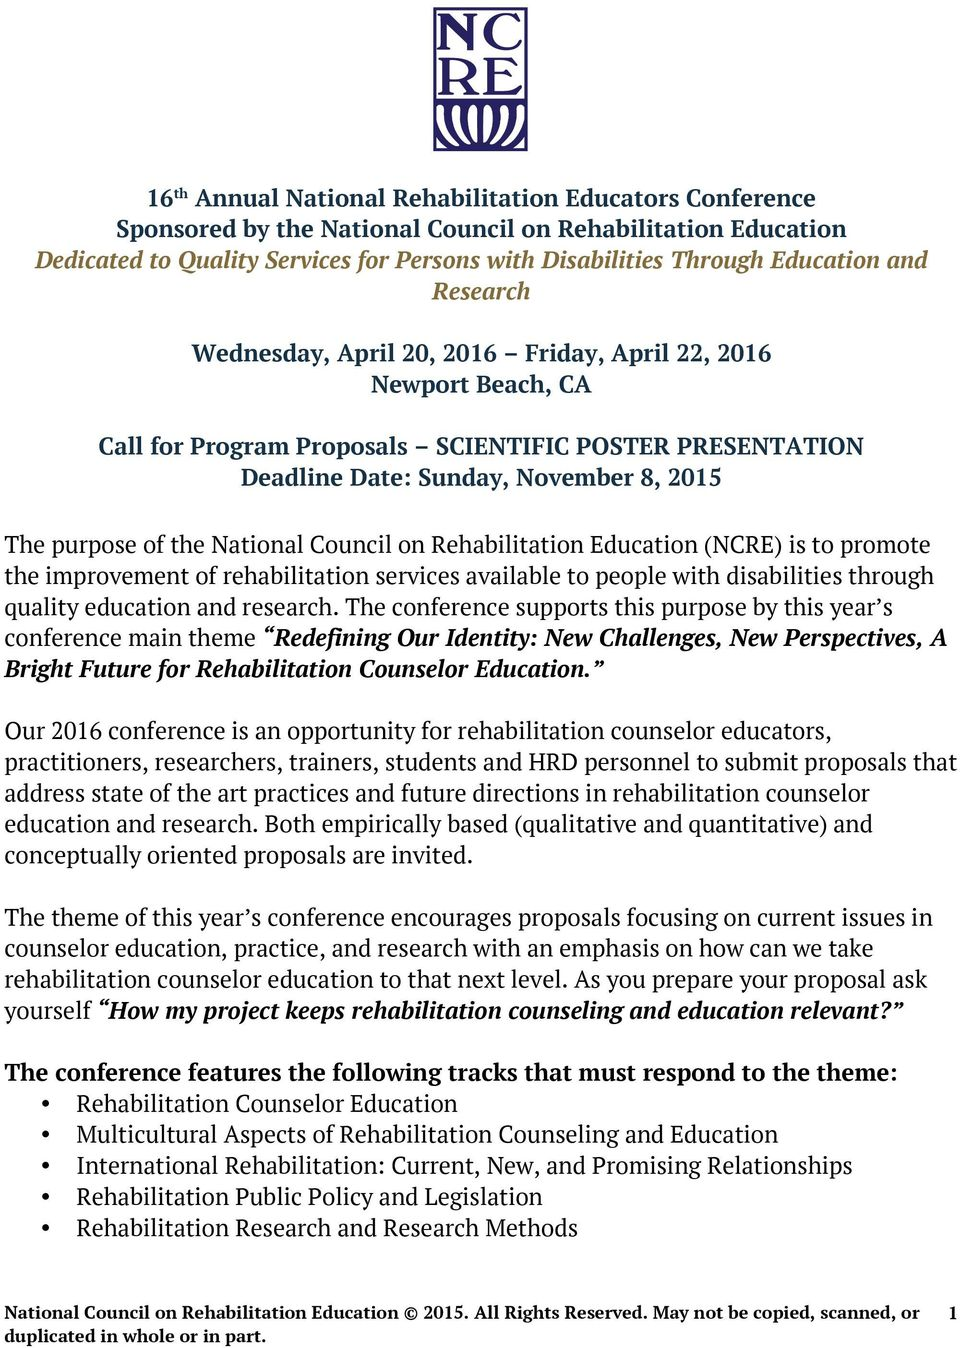 National Council on Rehabilitation Education (NCRE) is to promote the improvement of rehabilitation services available to people with disabilities through quality education and research.